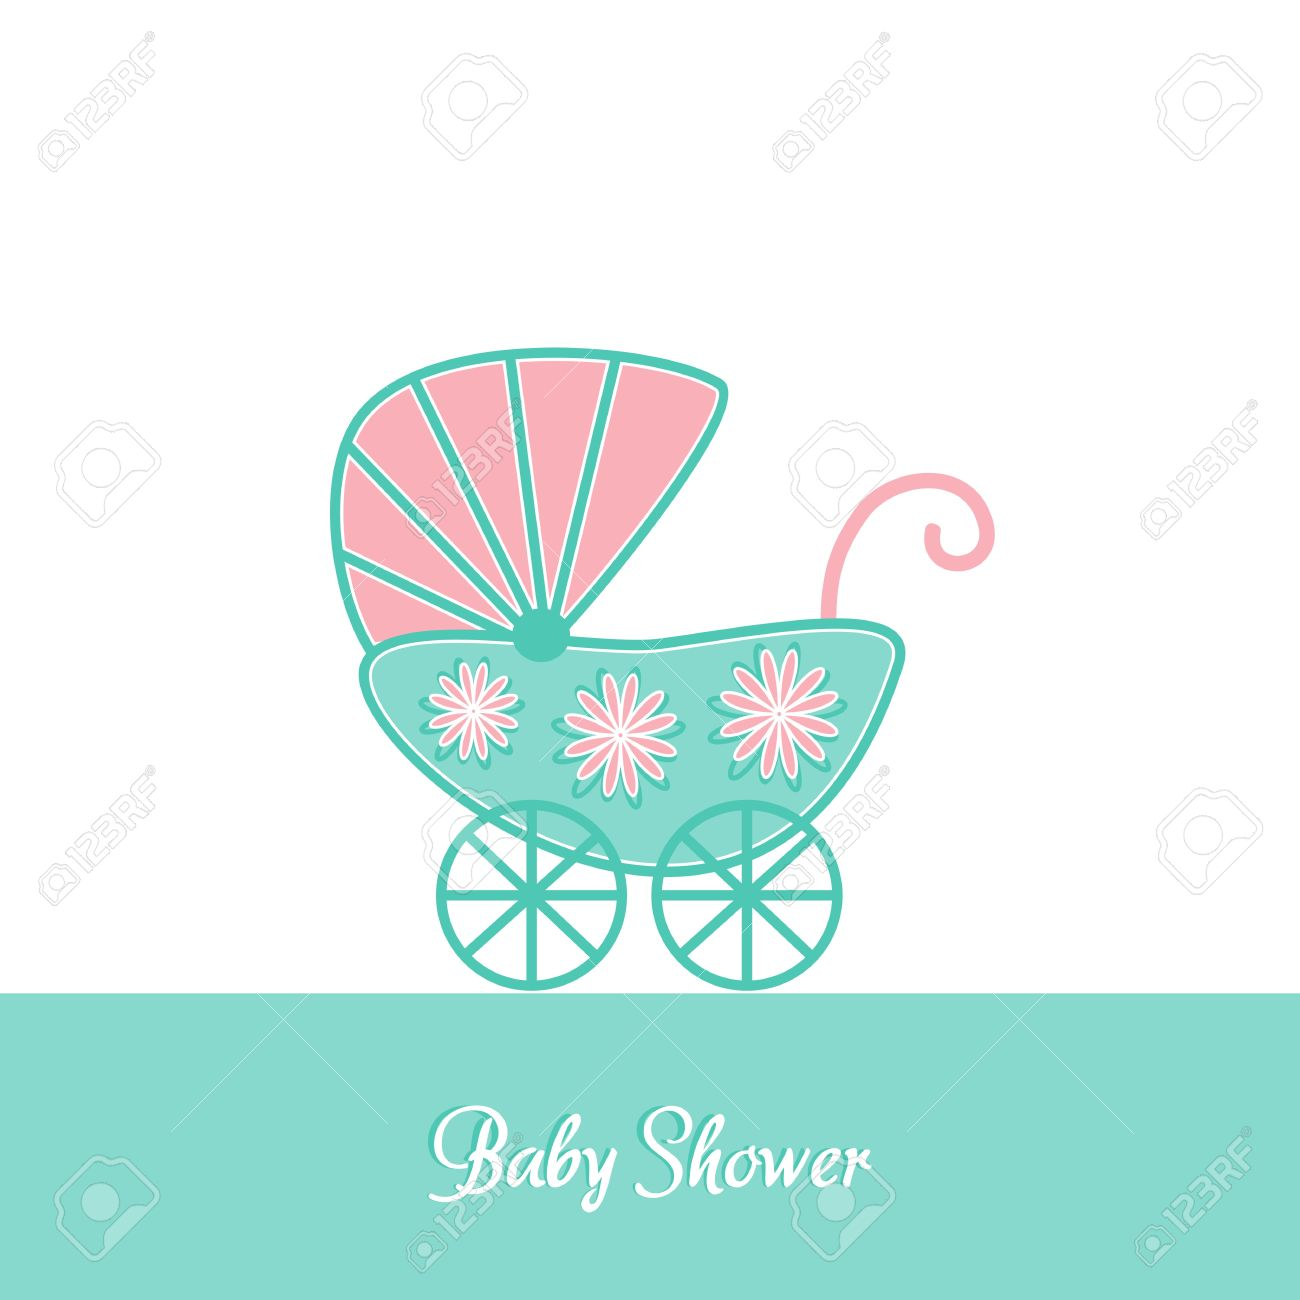 Baby Shower Vintage Invitation Card Template With Stroller Stock Vector    32146975